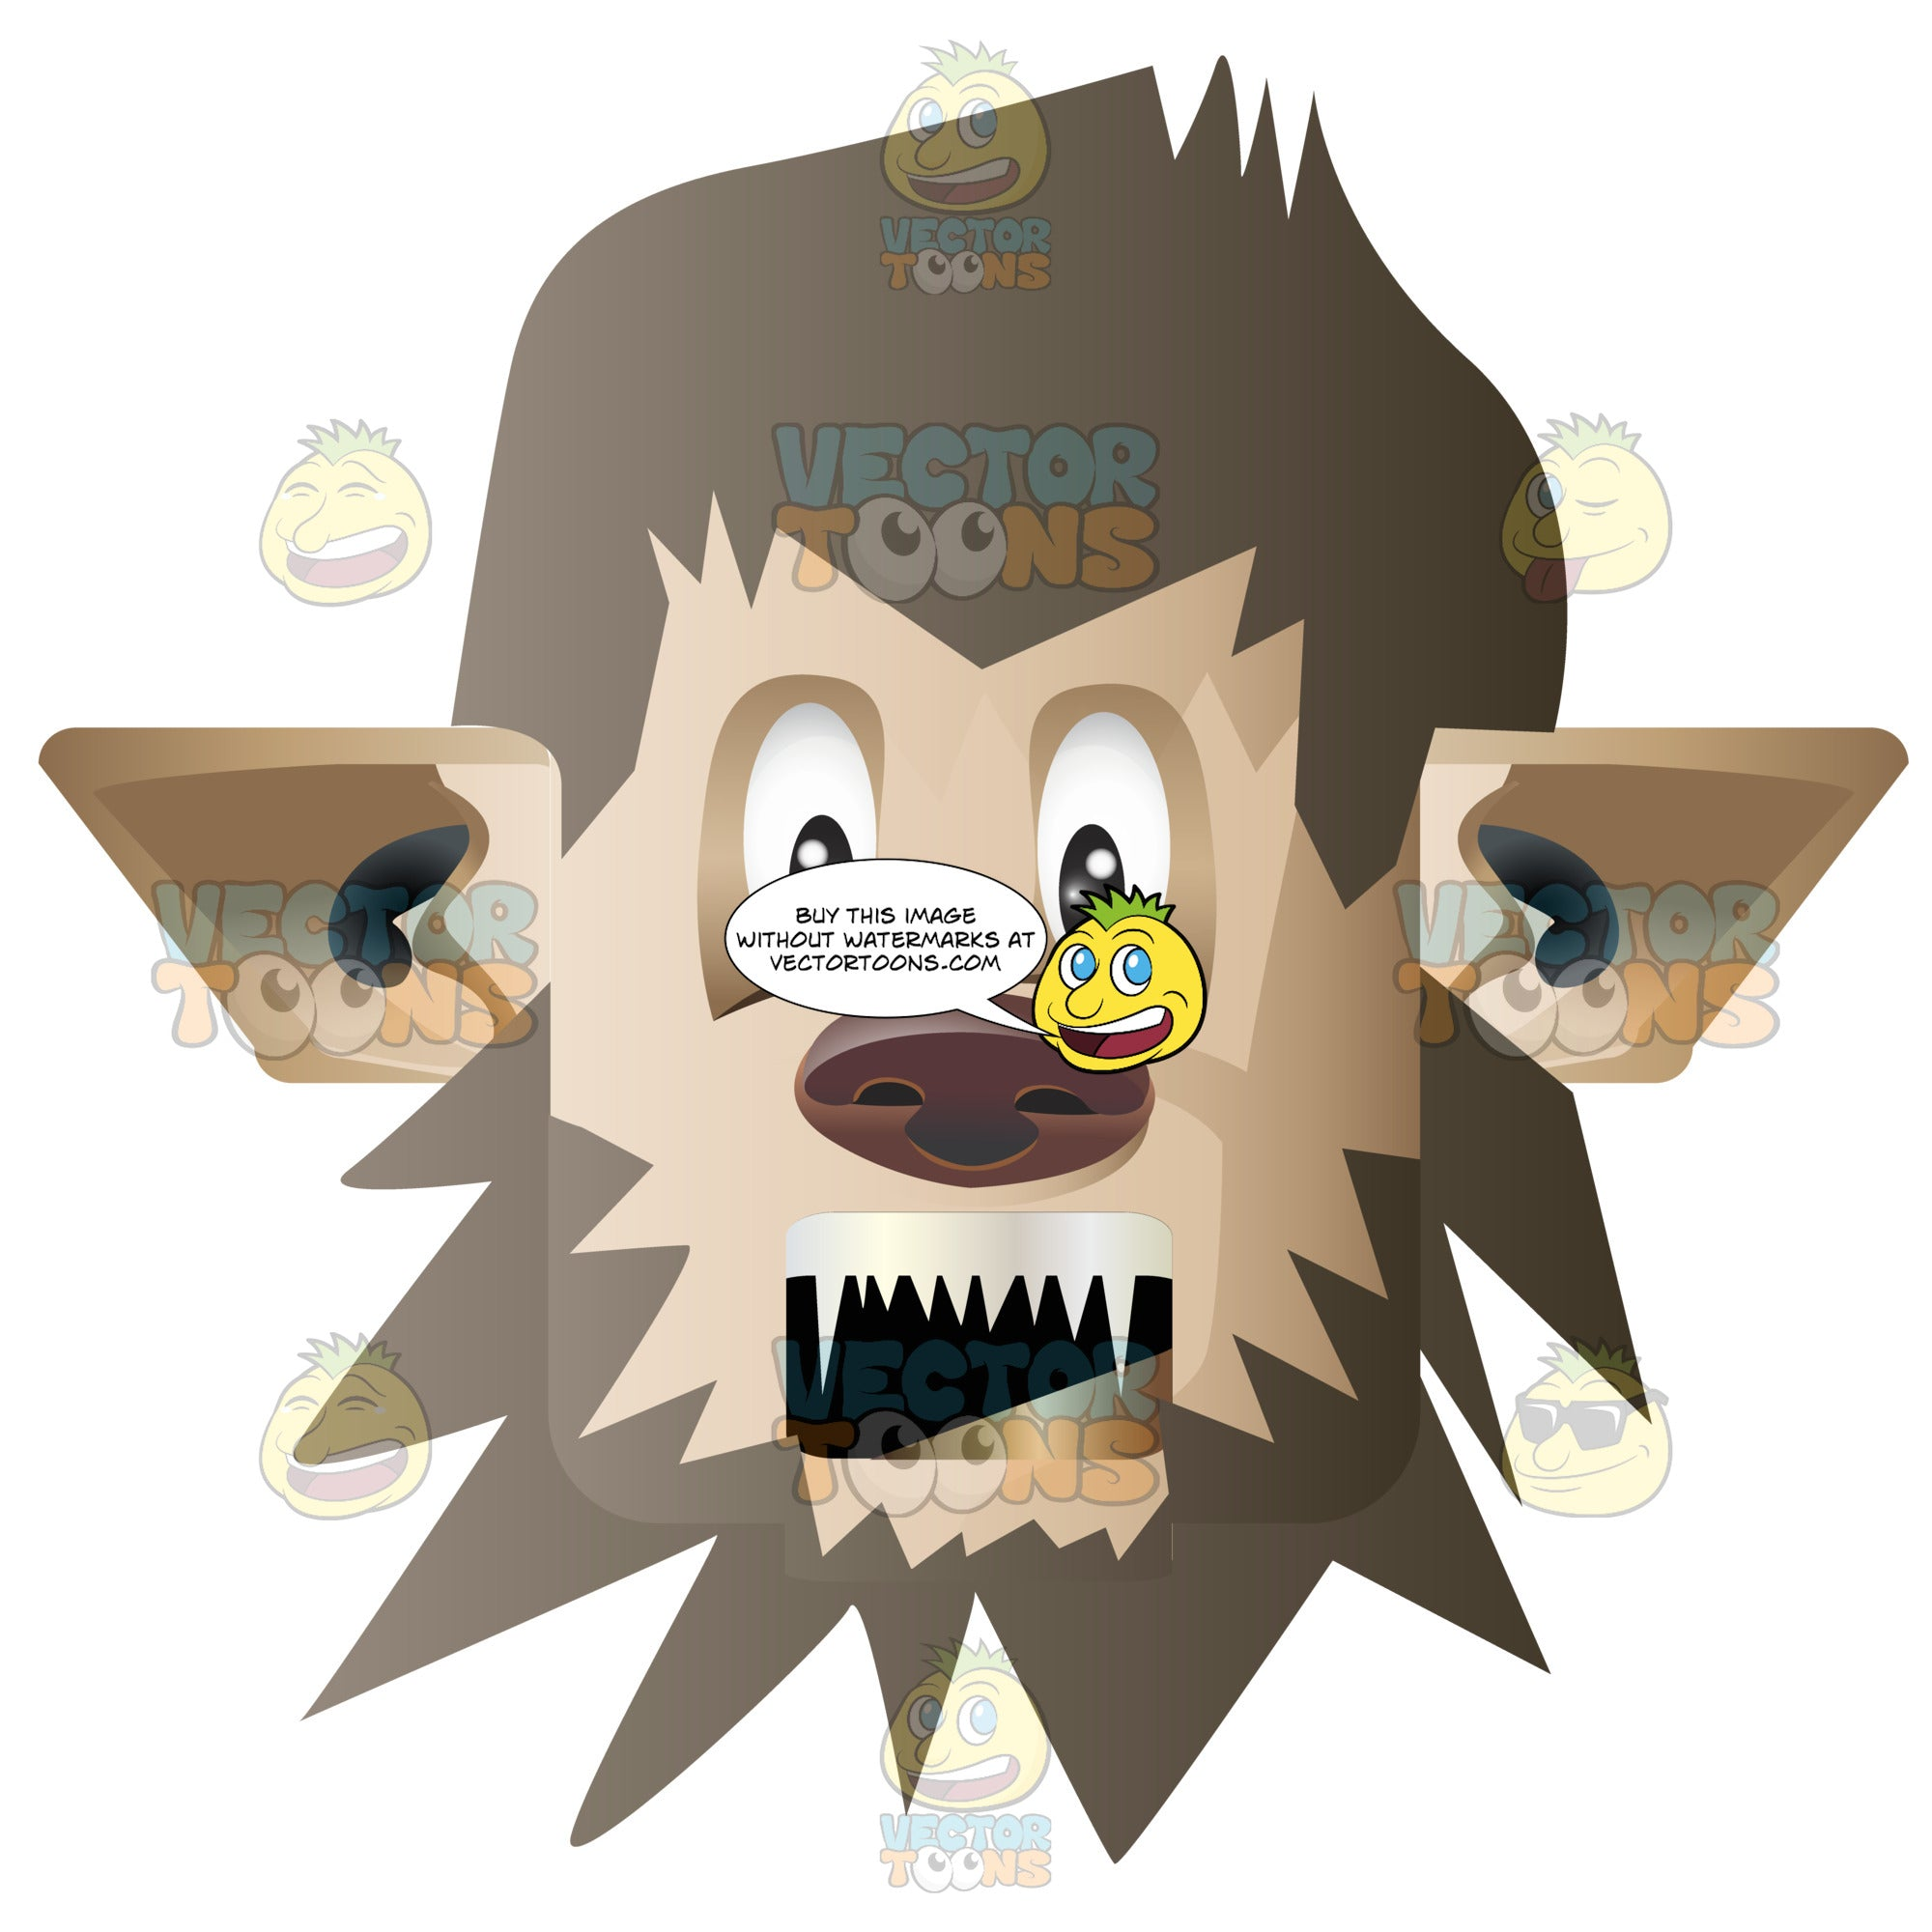 Werewolf Man Face With Brown Hair, Pointy Ears, Dog Nose And Sharp Canine Teeth Rounded Square Block Head